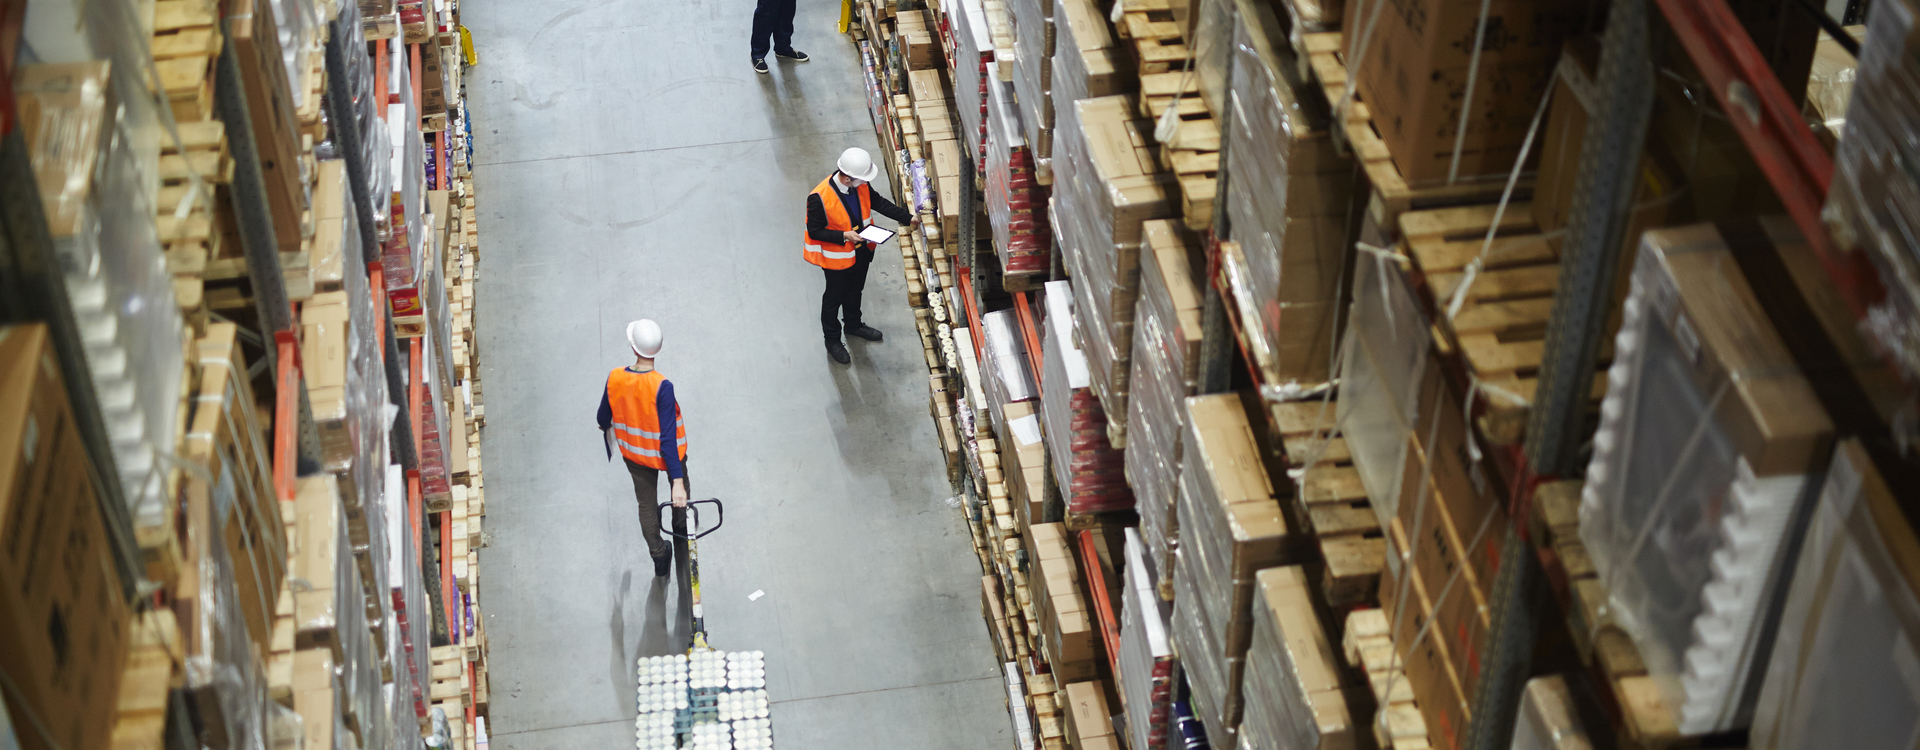 Warehousing & Distribution Business FOR SALE !